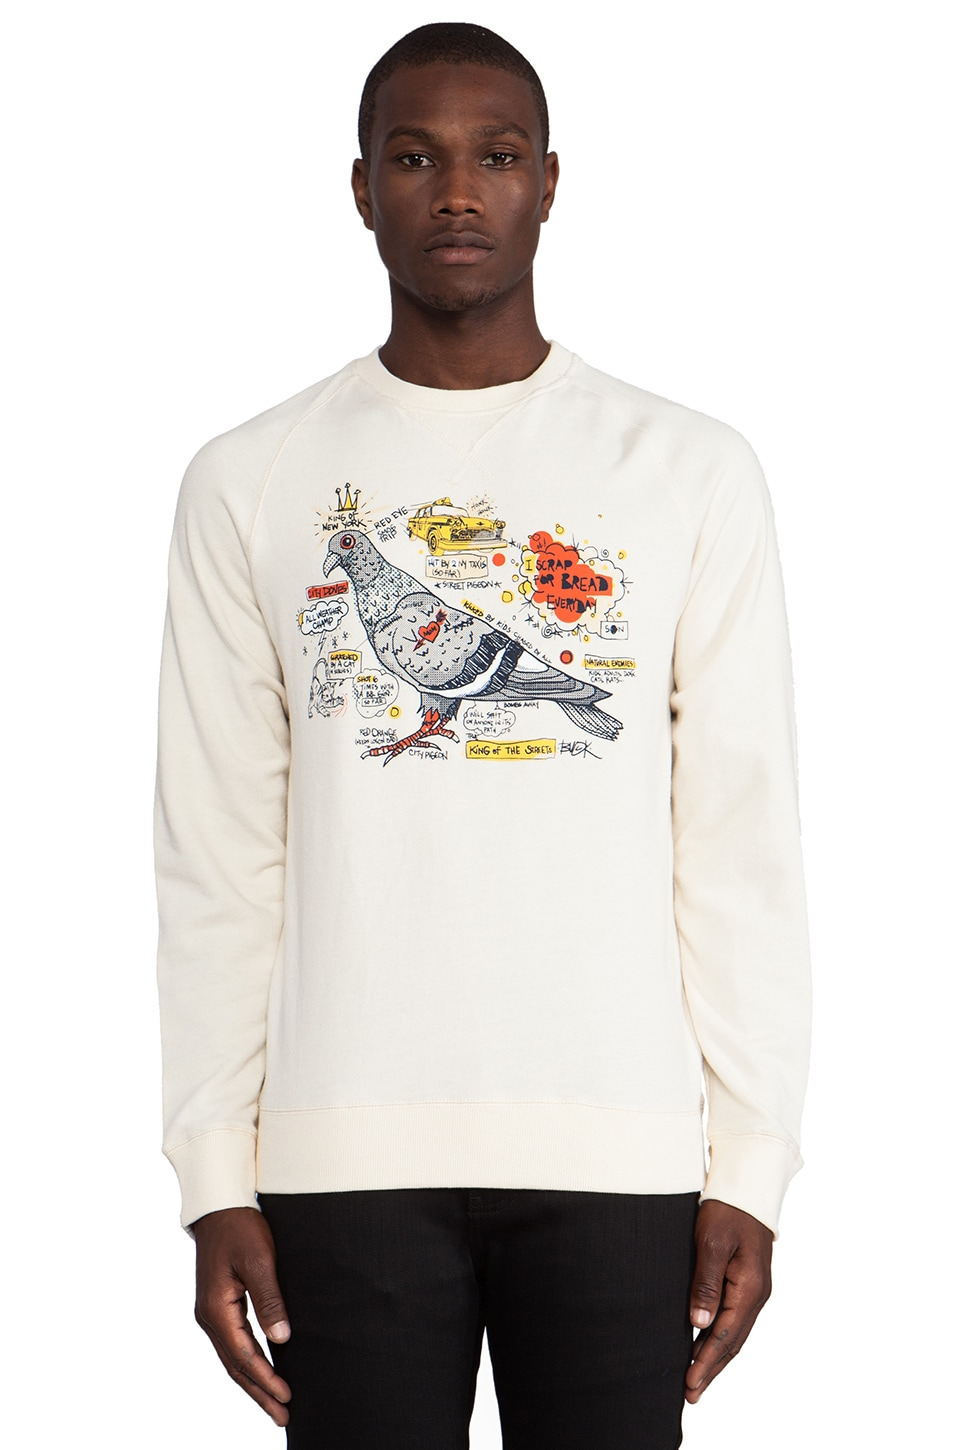 Staple City Doves Sweatshirt in Cream